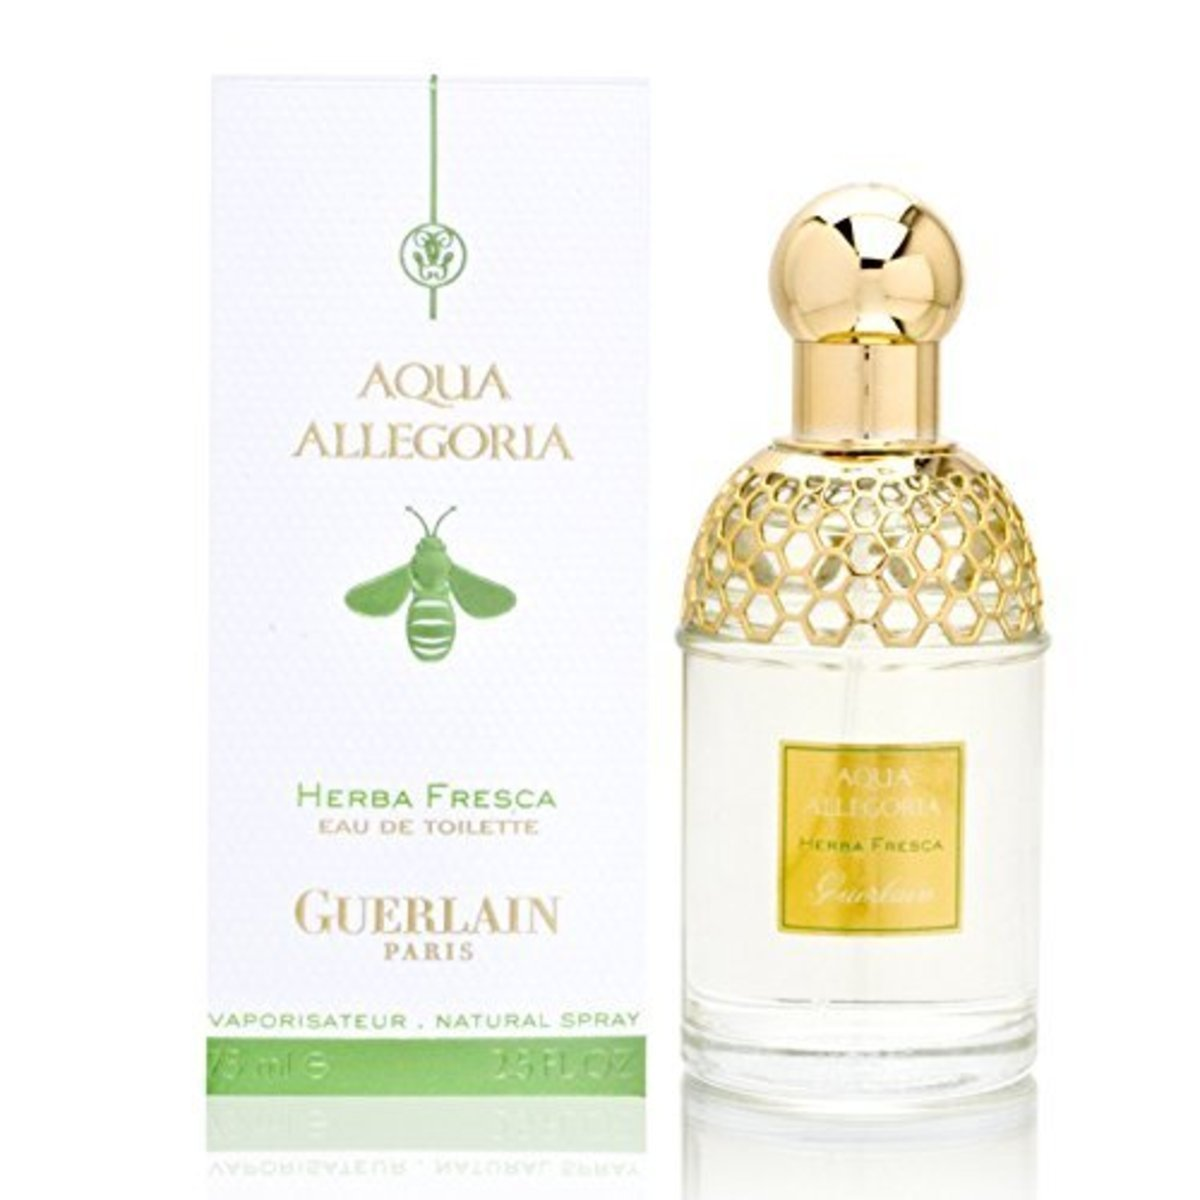 aqua-allegoria-herba-fresca-perfume-by-guerlain-for-women-personal-fragrances_13008_500